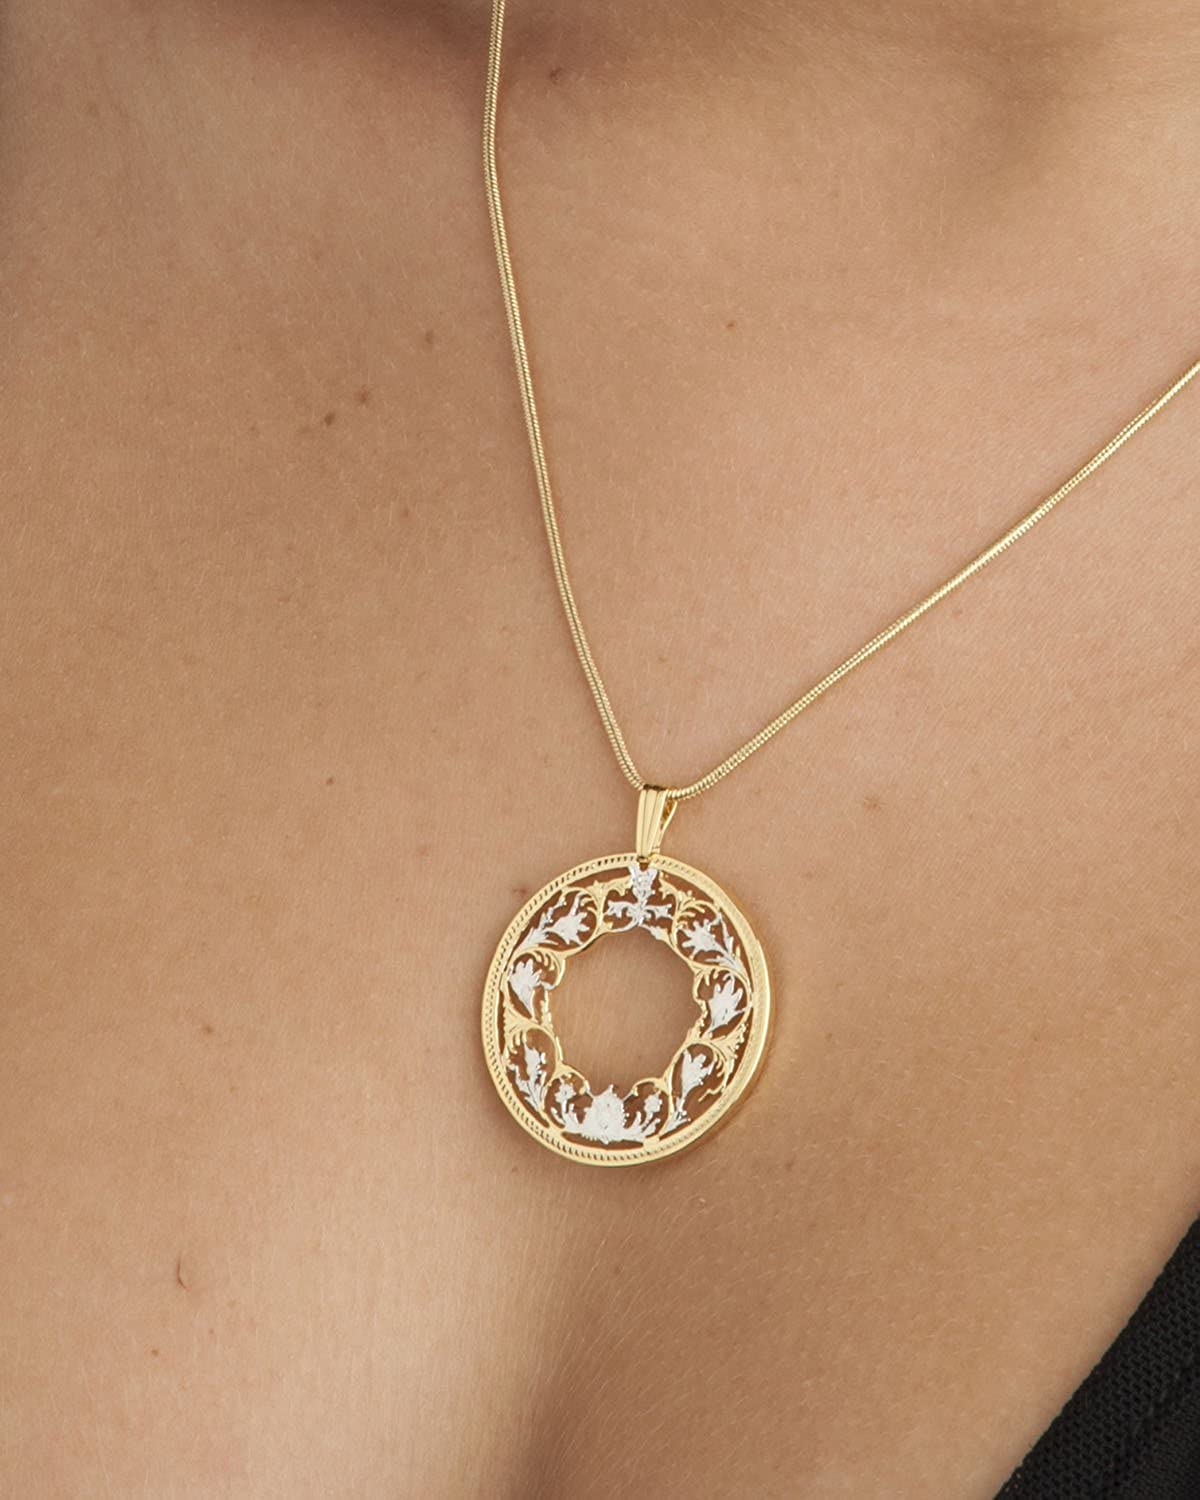 India Hand Cut Floral Coin Jewelry Flower Pendant /& Necklace